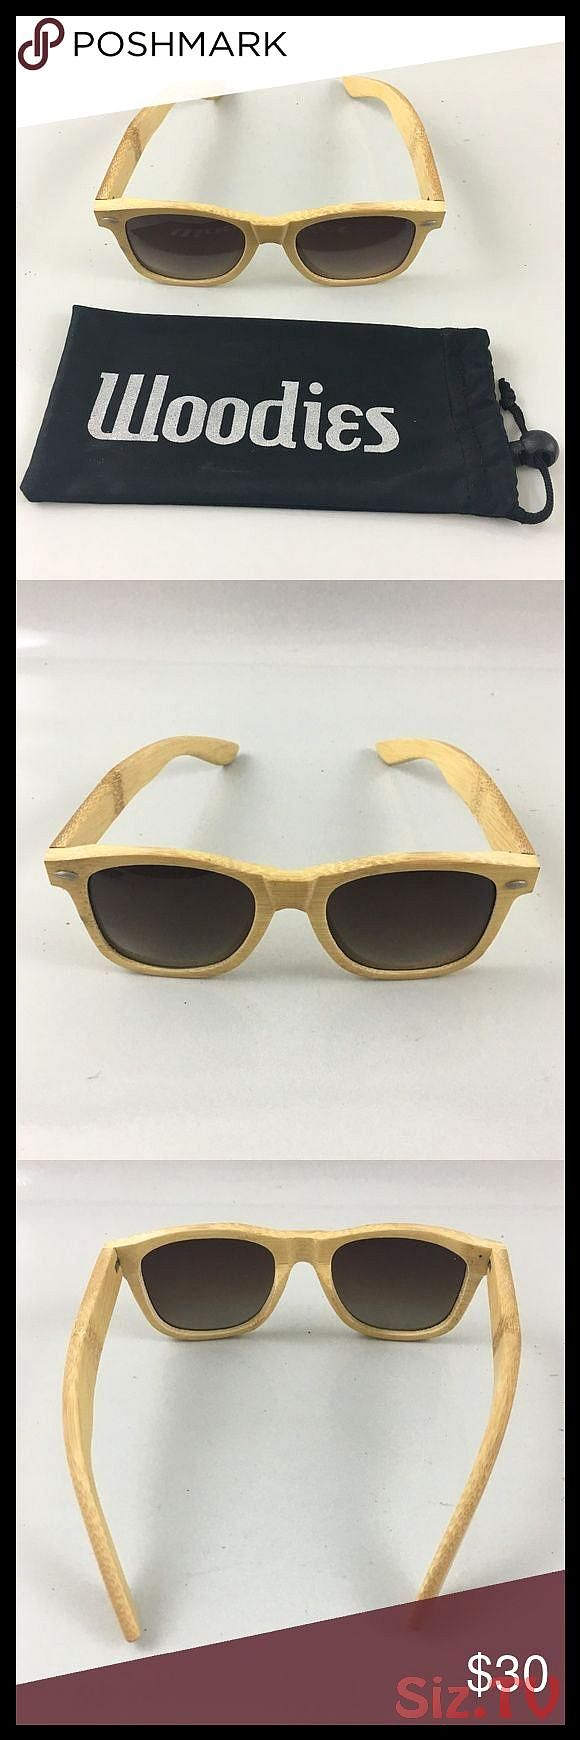 WOODIES Light Grain Full Bamboo Wood Sunglasses WOODIES Light Grain Full Bamboo Wood Sunglasses w Bag In good condition woodies Accessories SunglasseWOODIES Light Grain F...